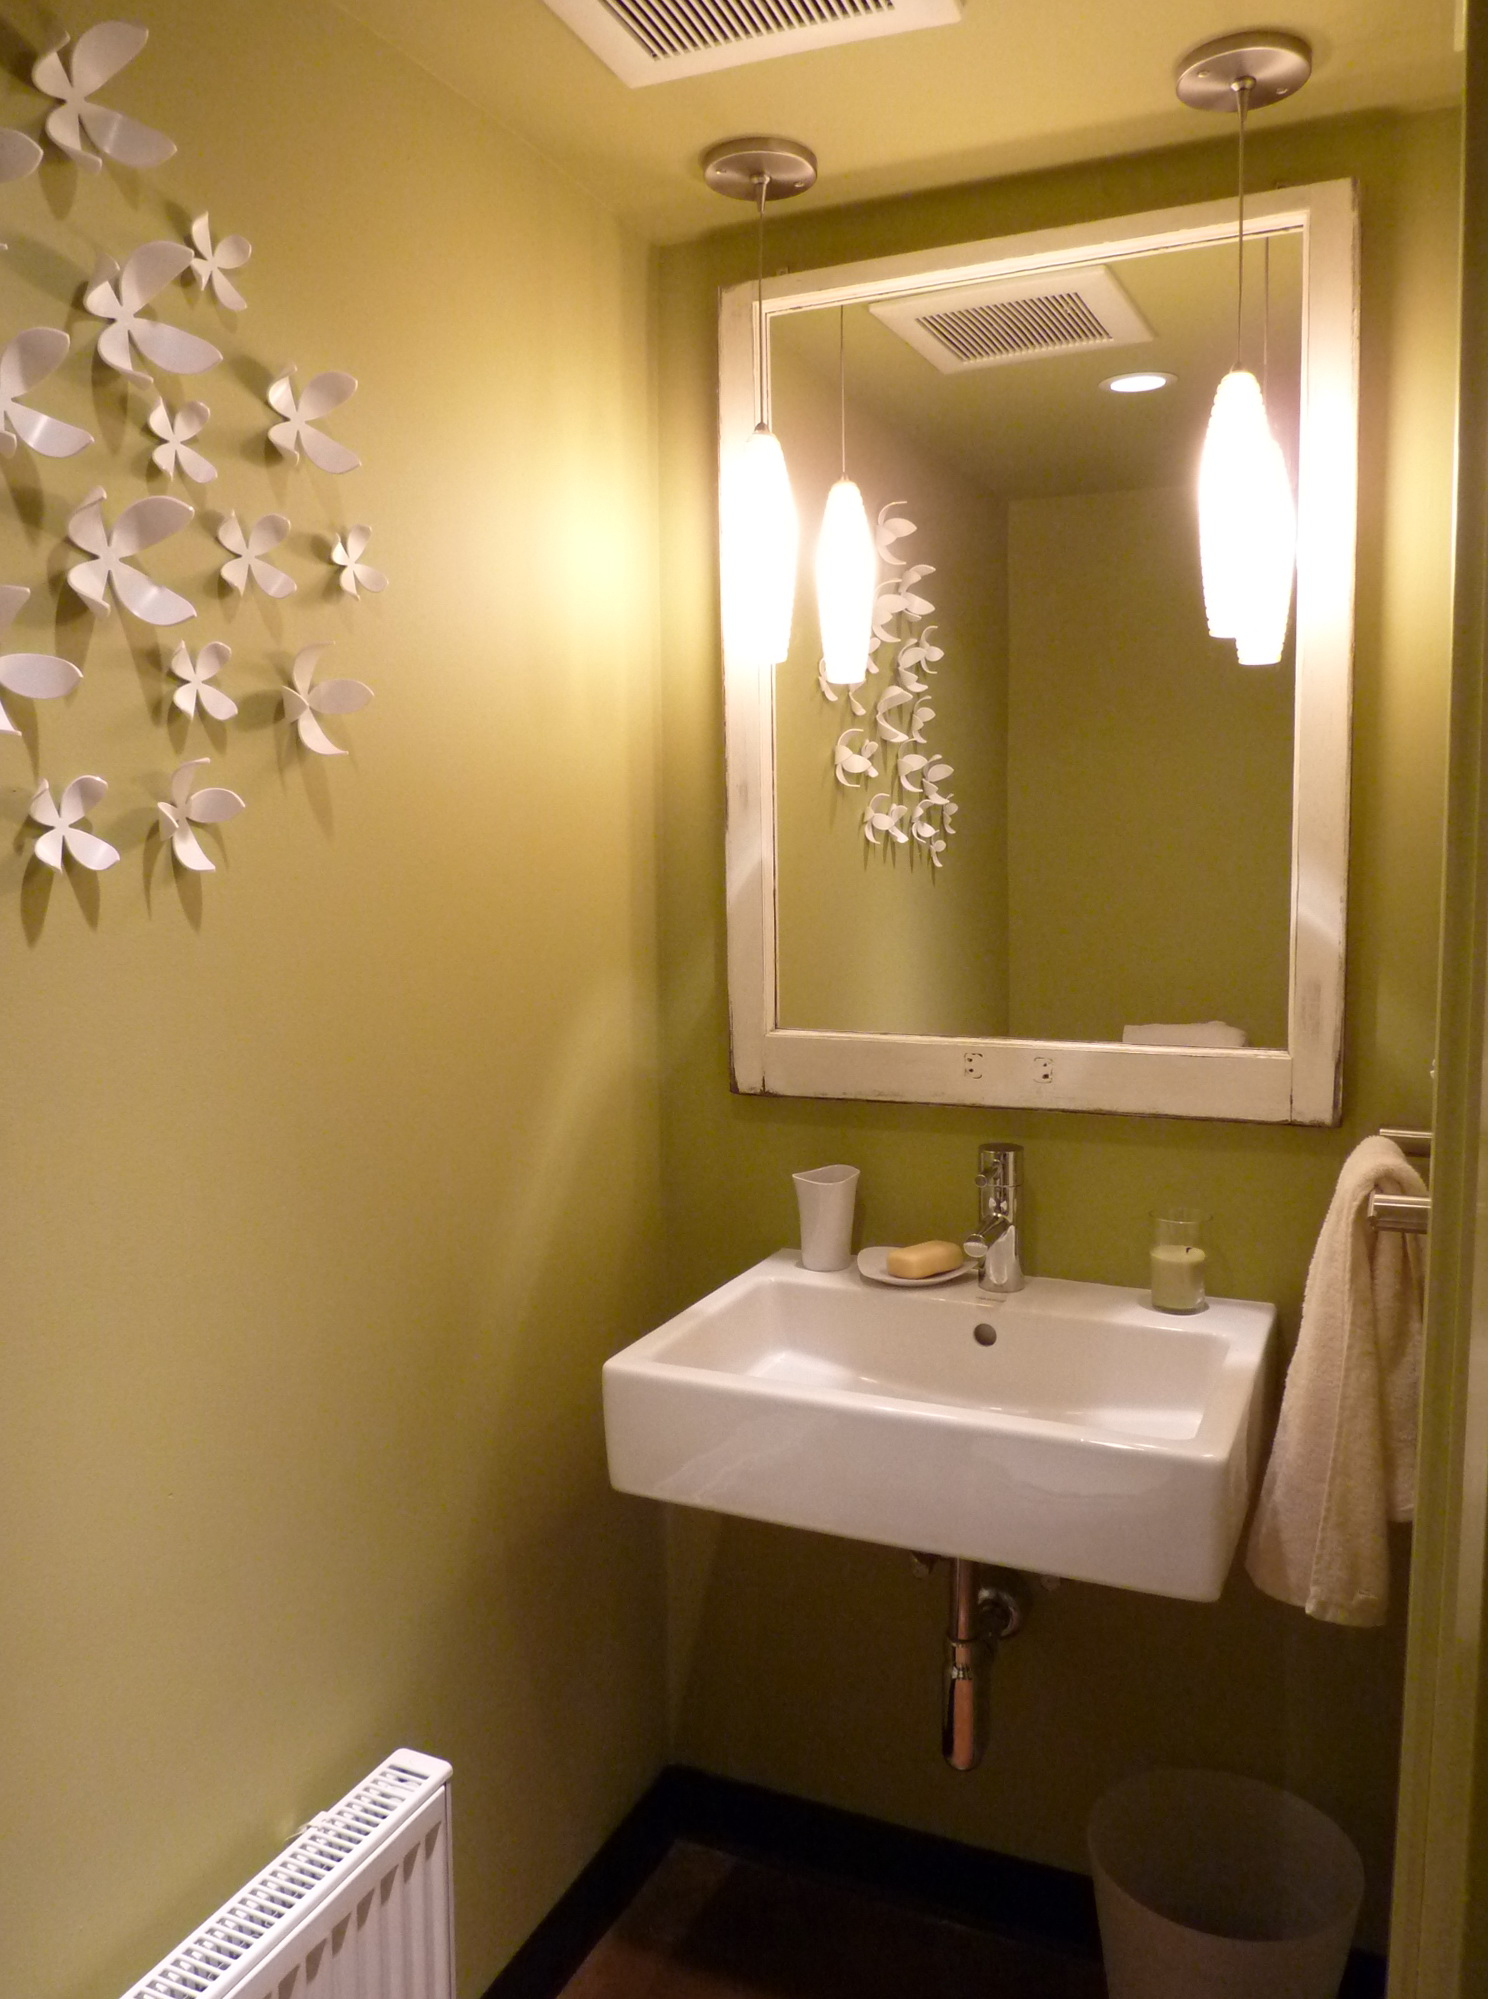 Powder Room Mirrors And Lights | Home Design Ideas